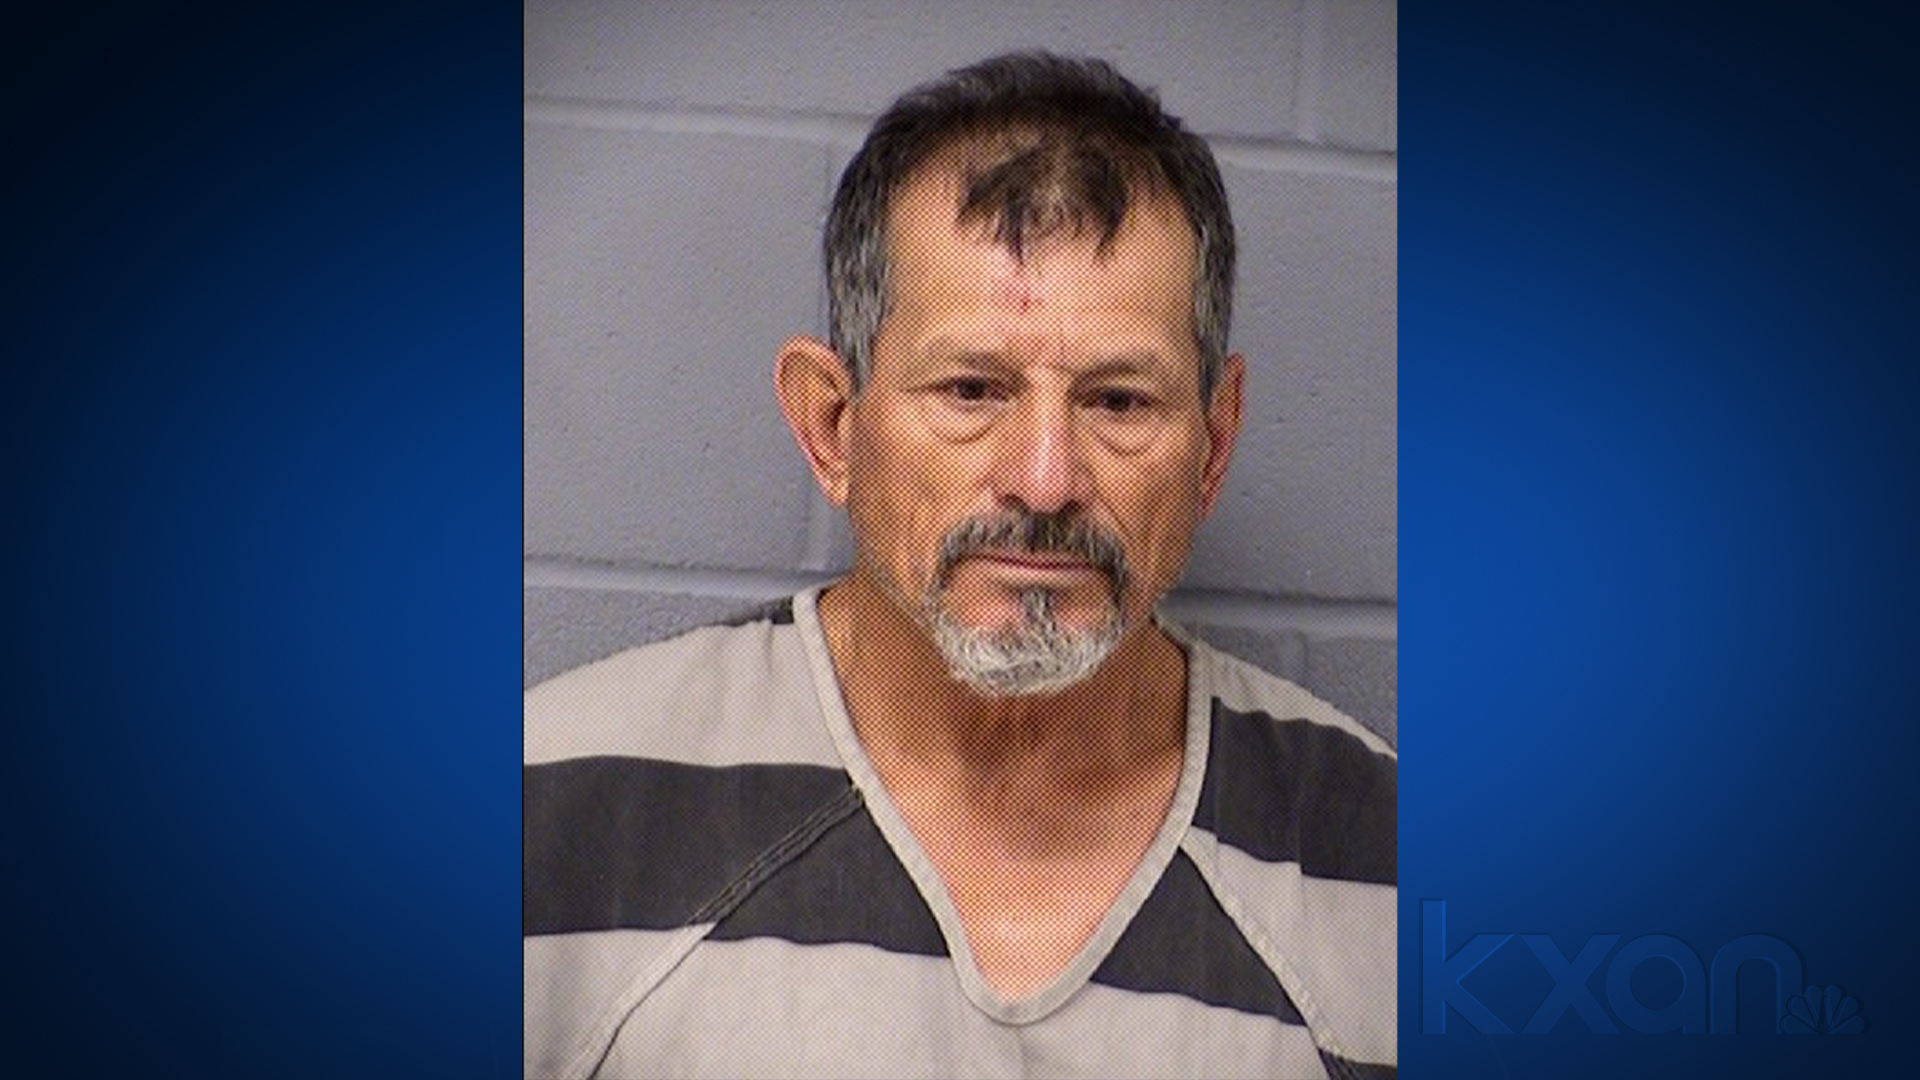 63-year-old Francisco Aviles (APD Photo)